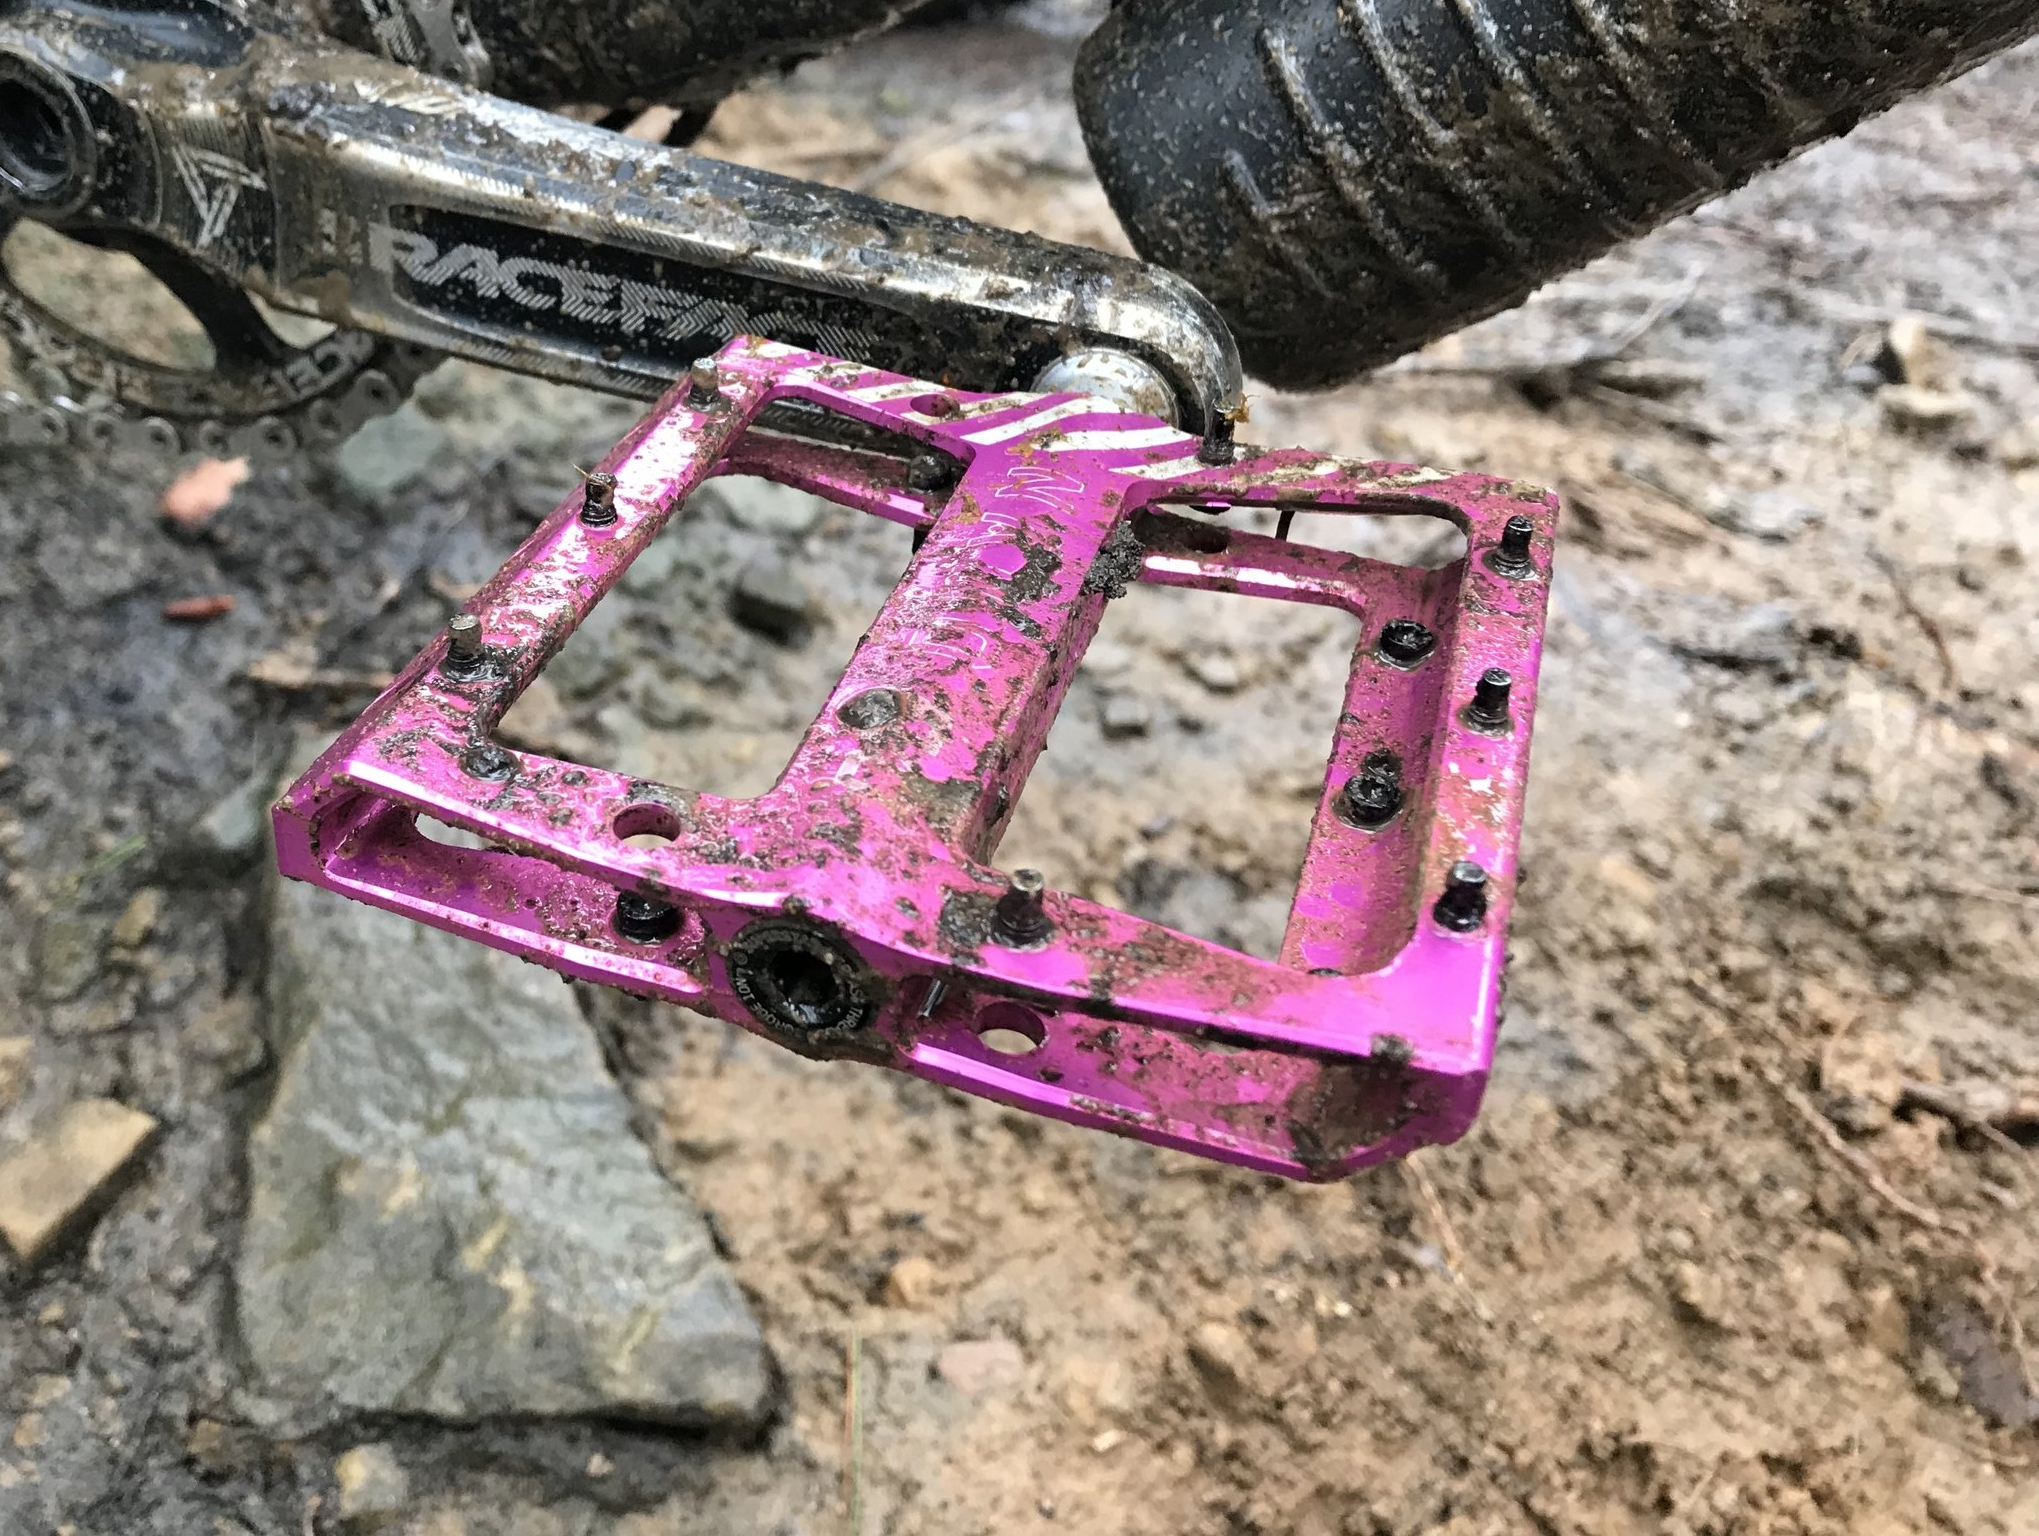 Nano X Evo Pedals:  - Price: £49.99 - £99.99Likes: Wide Platform, replaceable pins, great colours, good value. Dislike: What's not to like?Product supplied for review